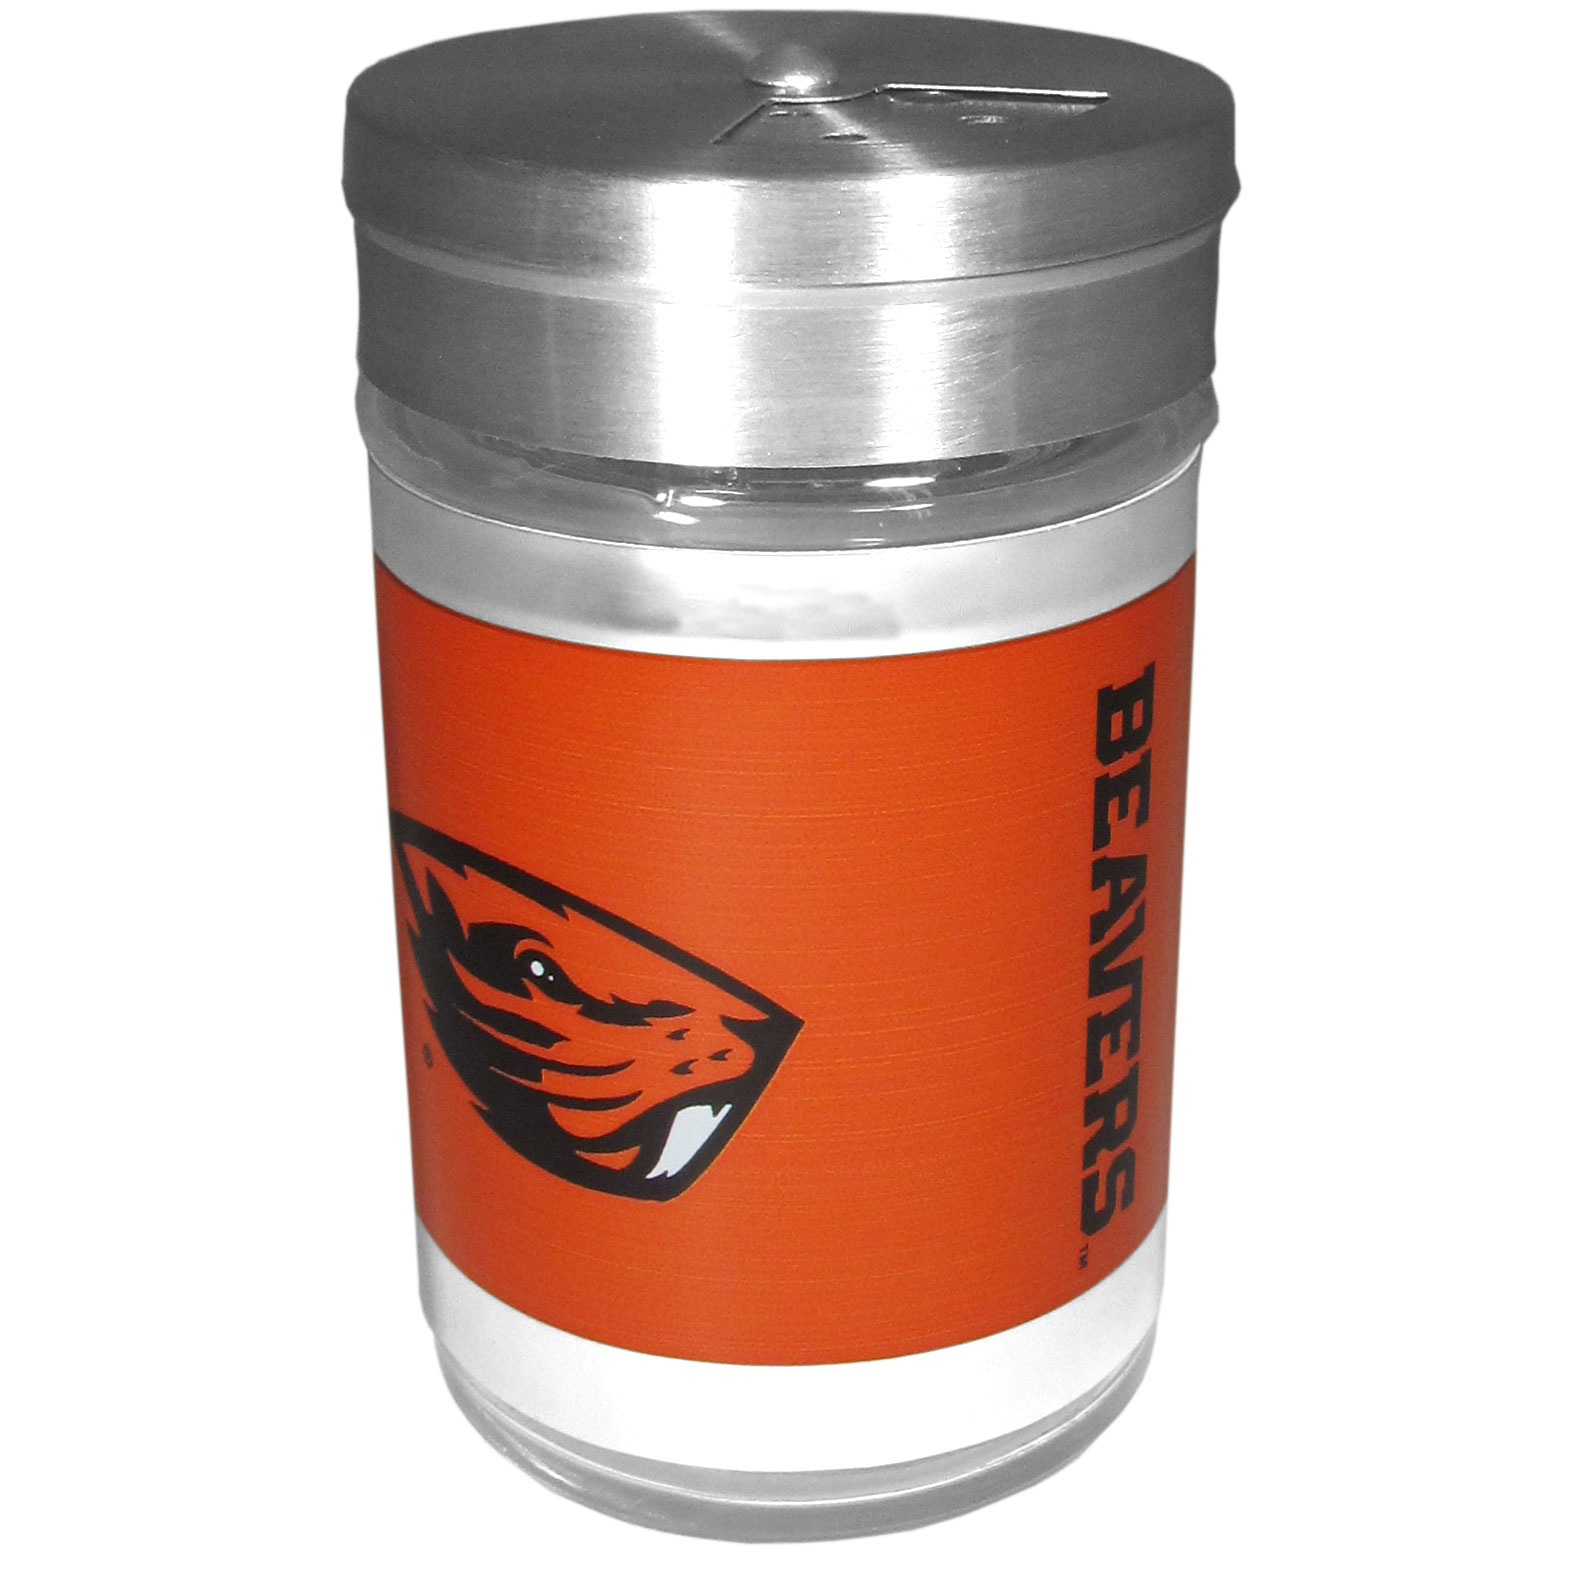 Oregon St. Beavers Tailgater Season Shakers - Spice it up with our Oregon St. Beavers tailgater season shakers! This compact shaker is 2 inch tall with a twist top that closes off the holes at the top making it perfect for travel preventing those messy spills. The shaker has wide holes perfect for keeping your pepper seeds or cheese toppings. The bright team graphics will make you the envy of the other fans while you are grilling up your tailgating goodies.